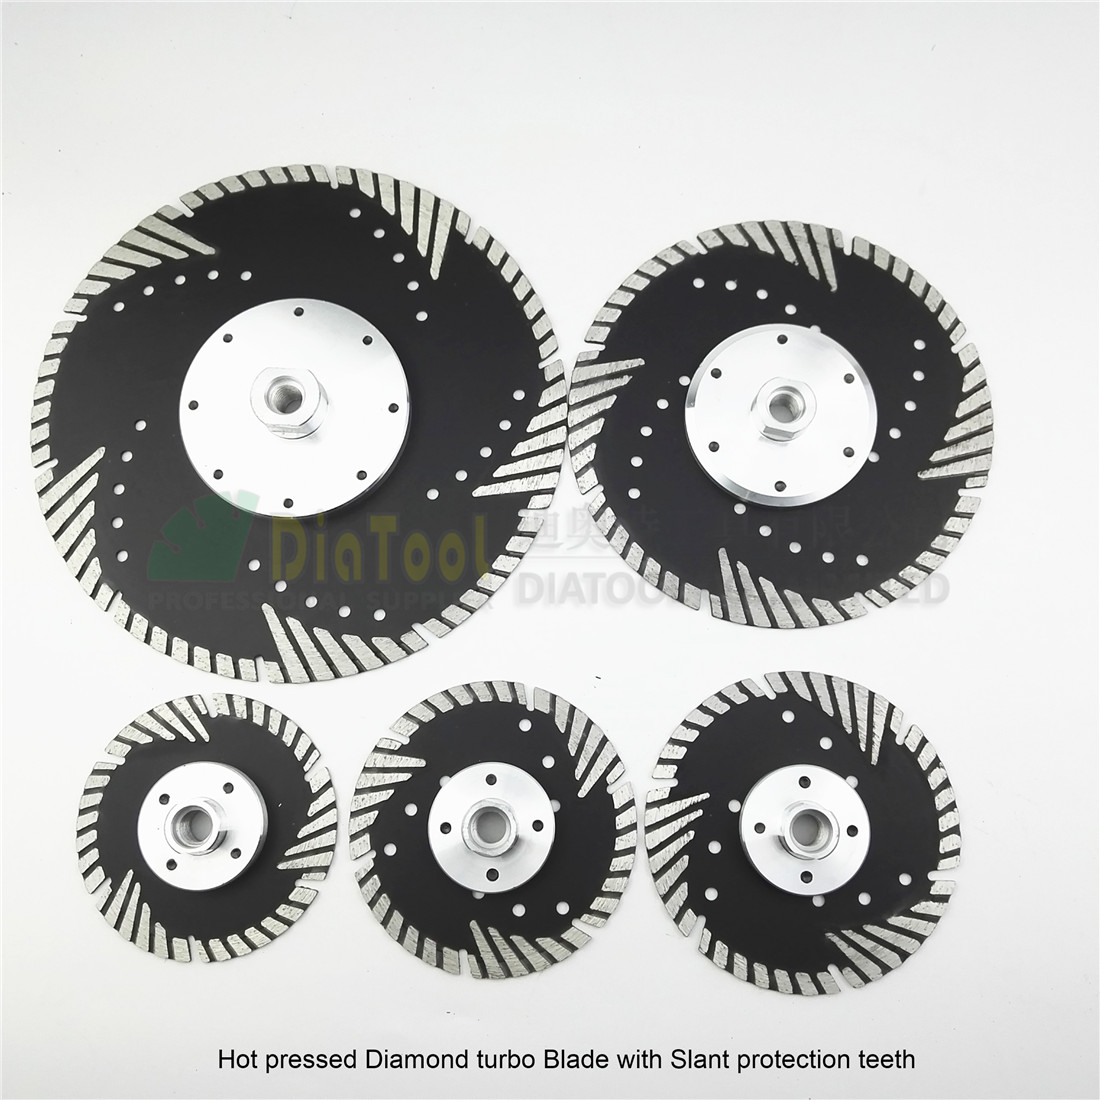 DIATOOL Metal Bond Diamond SawBlade With Slant protection teeth Cutting Disc stone concrete Masonry Diamond Blade Wheel